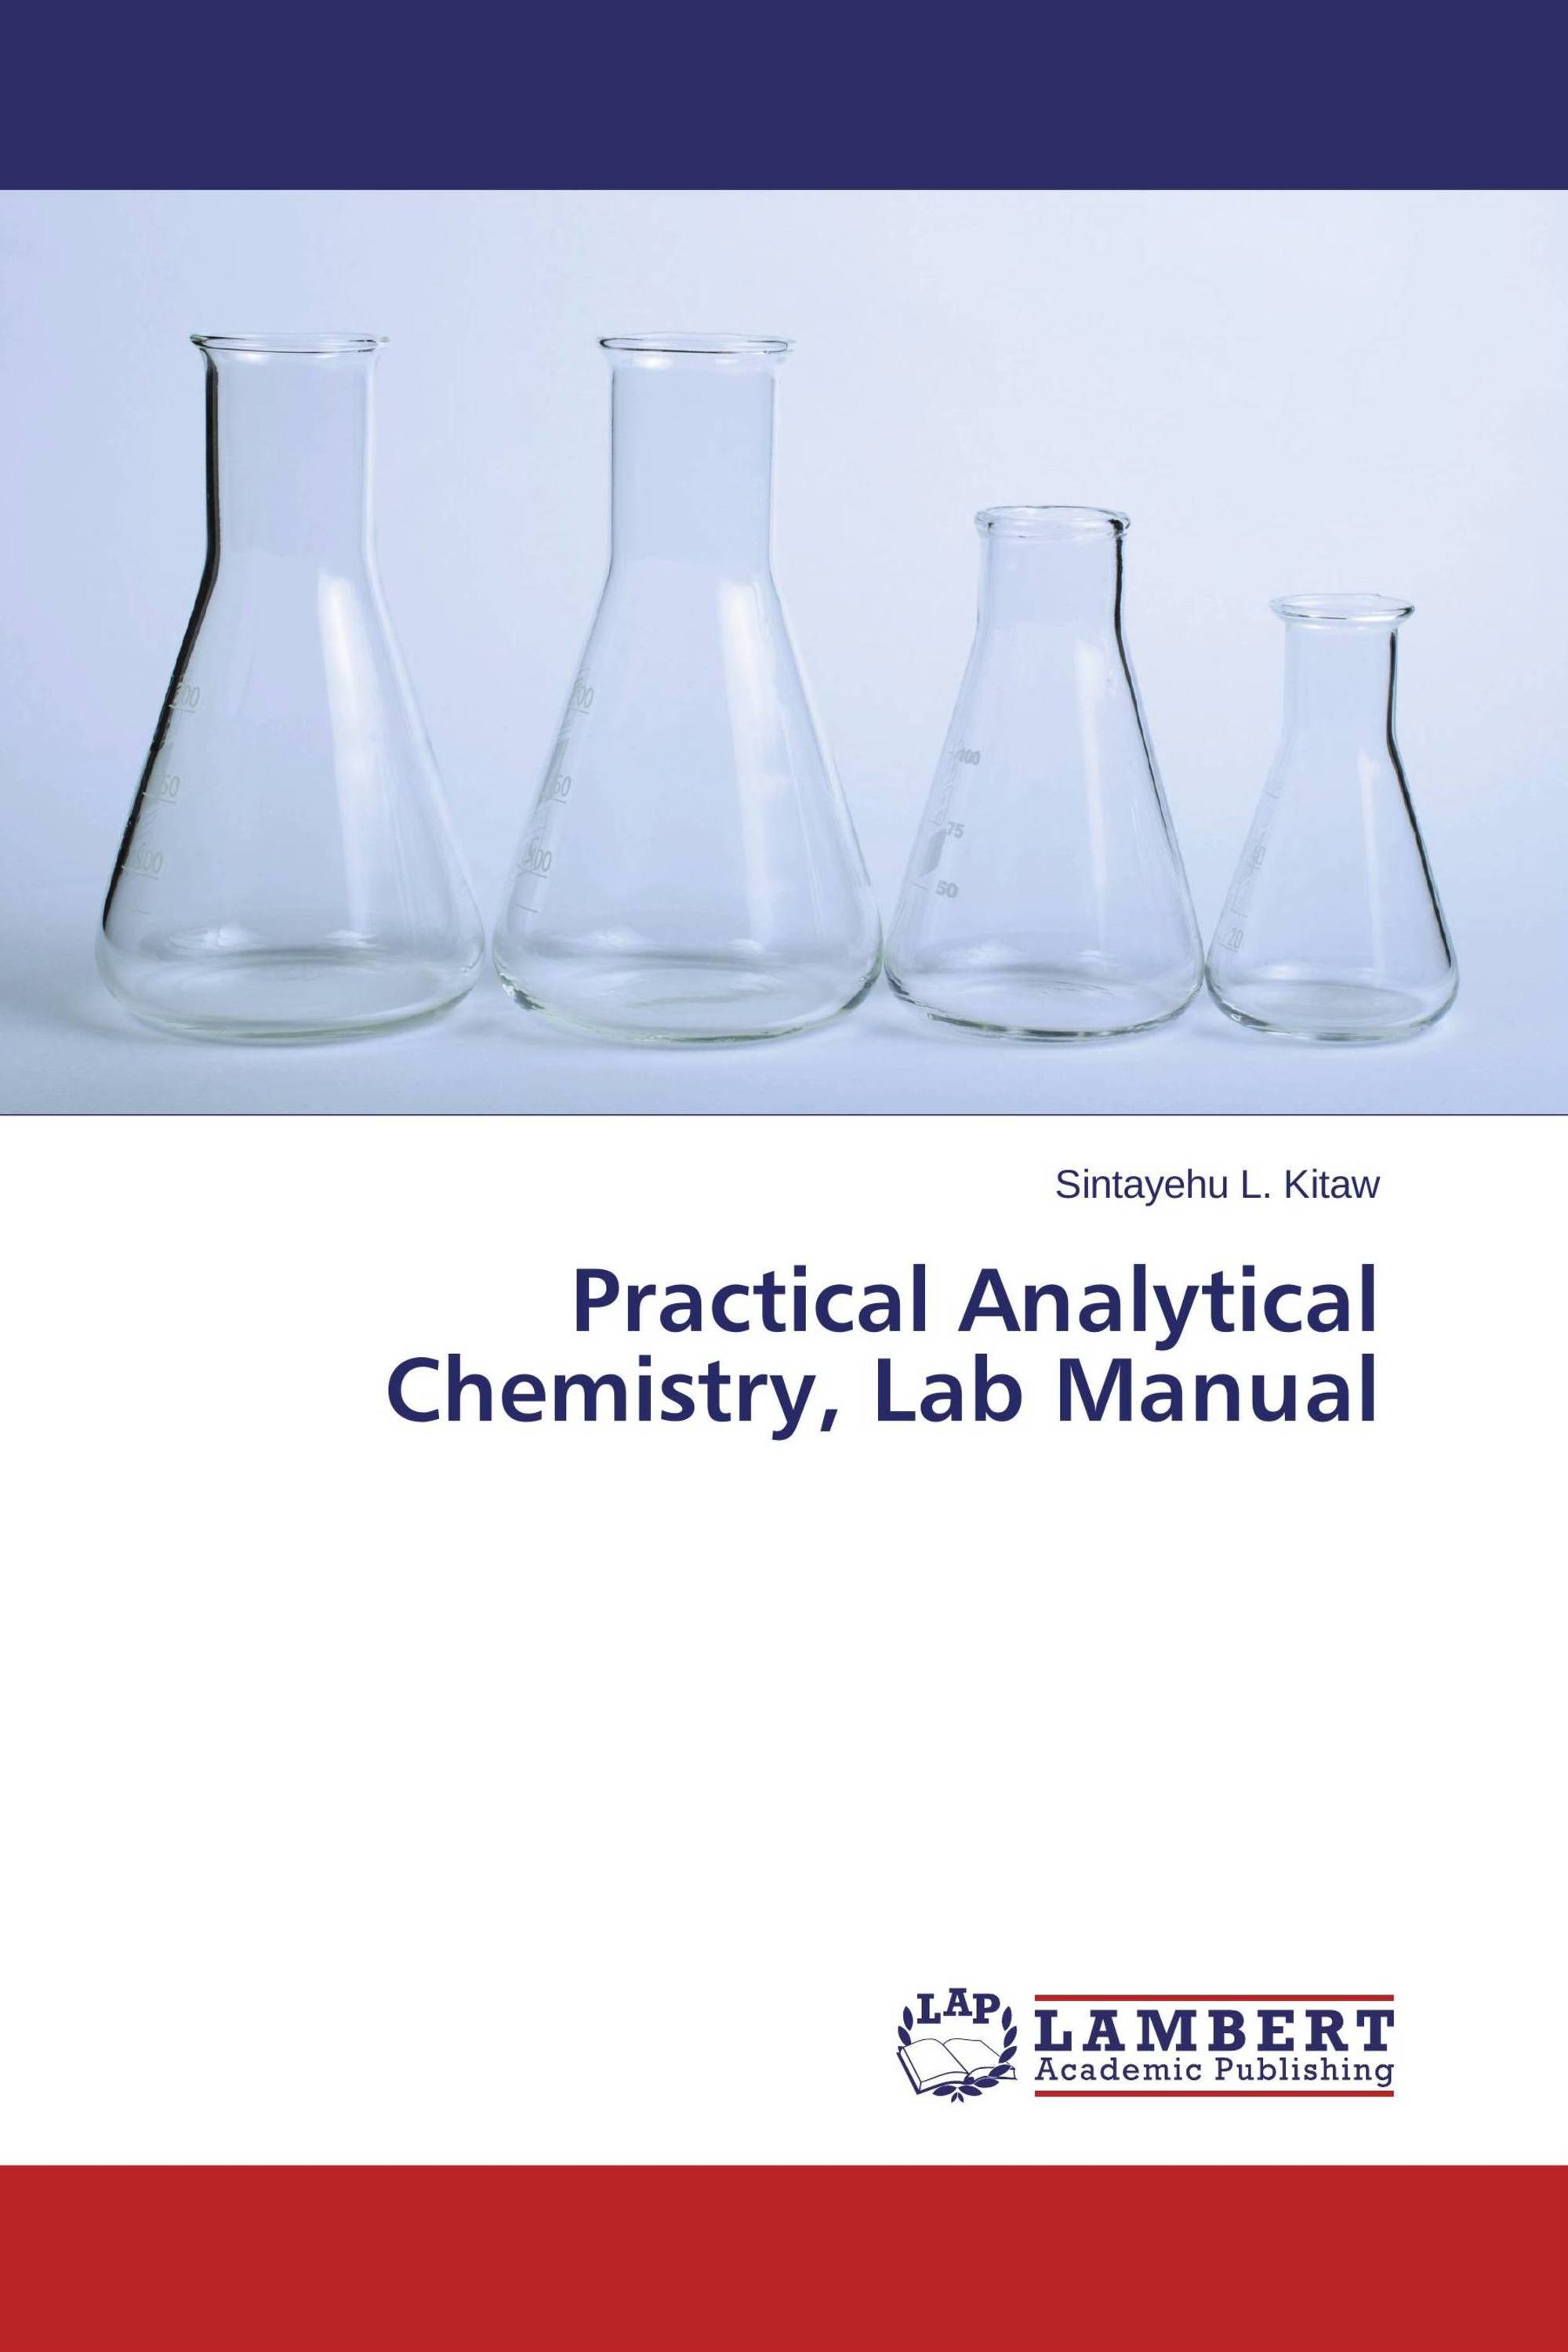 Practical Analytical Chemistry, Lab Manual / 978-3-659-29045-9